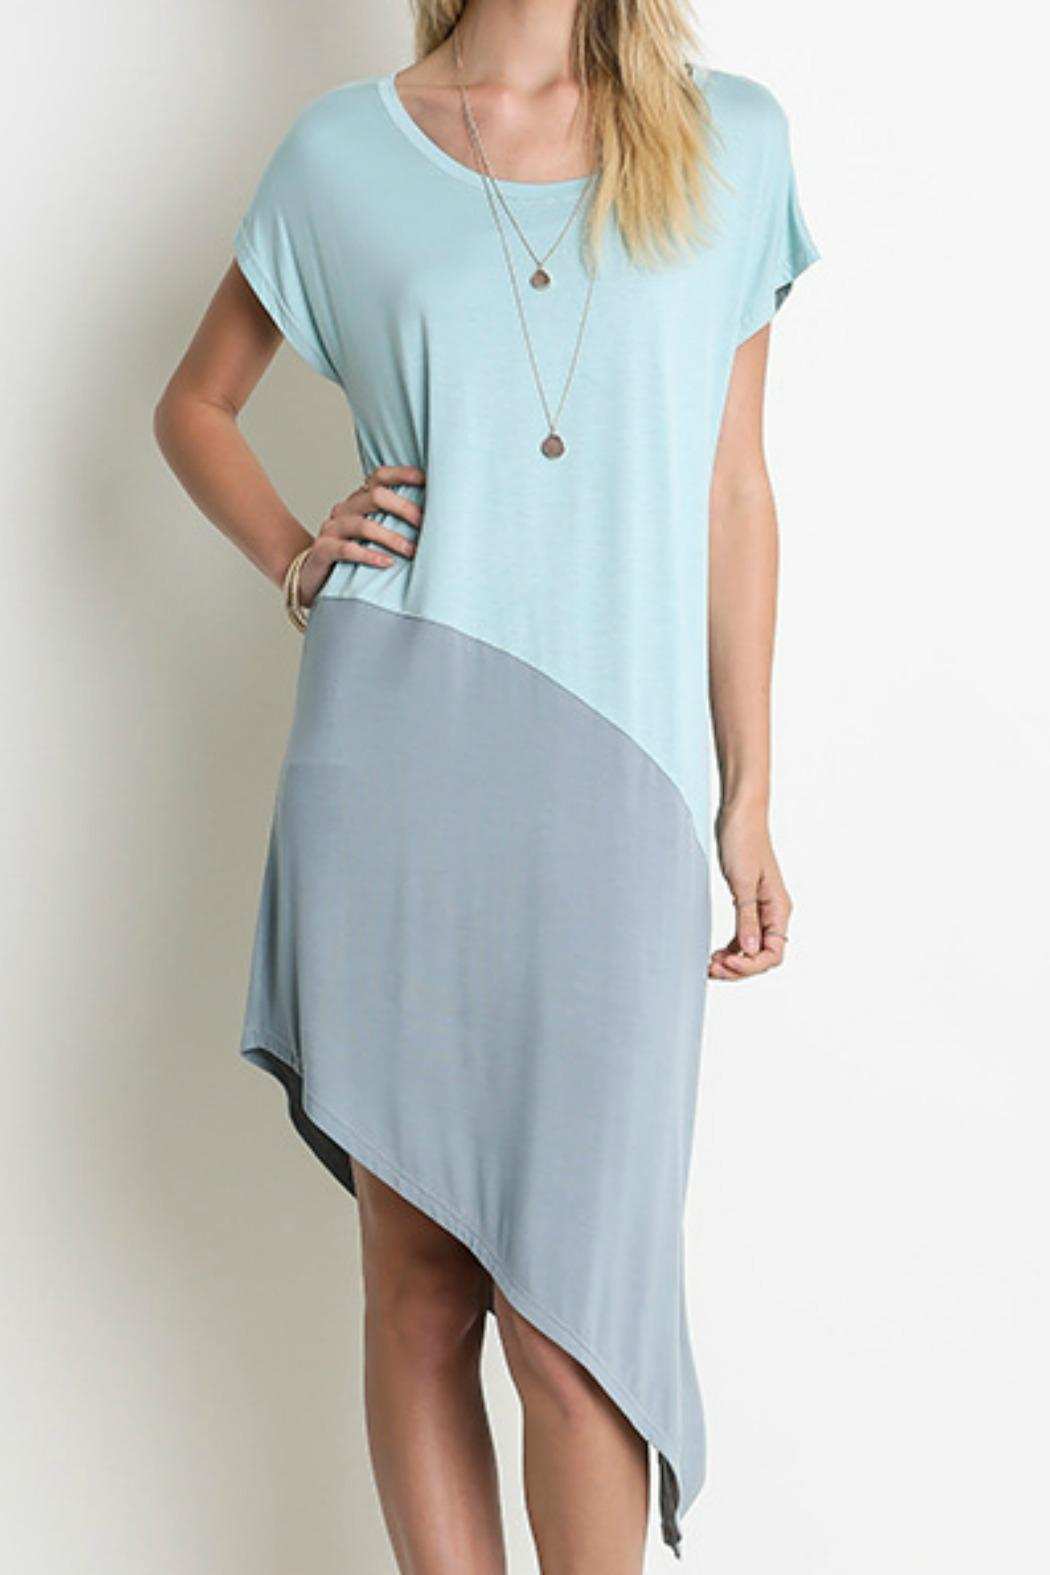 Umgee USA Two-Toned Asymmetrical Dress - Front Cropped Image